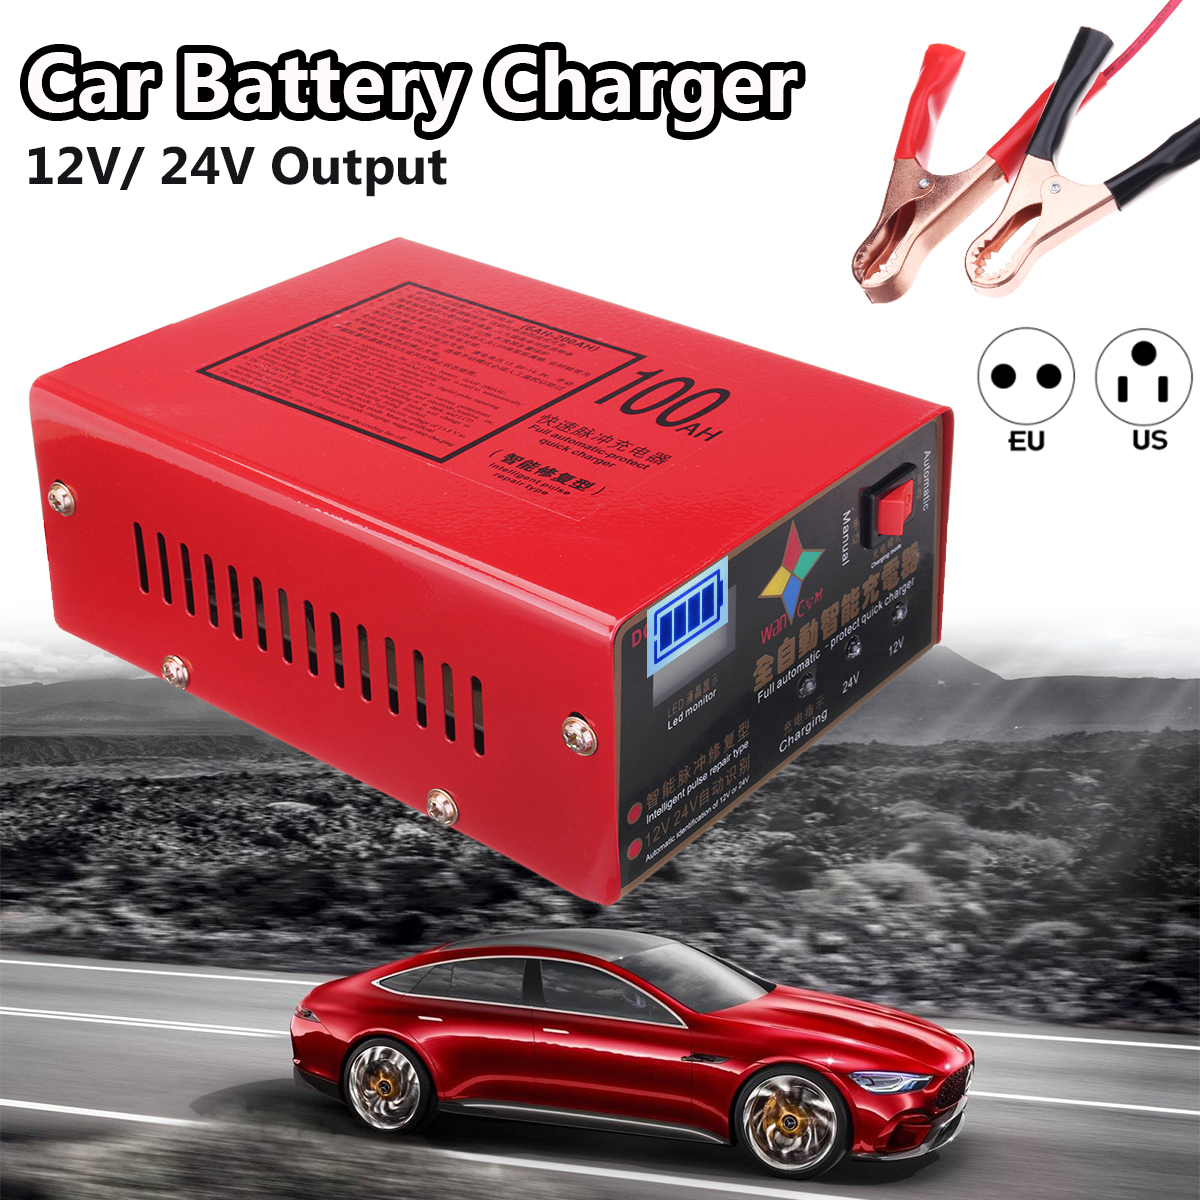 12V 24V Full Automatic Car Battery Charger Lead Acid Charger Intelligent Pulse Repair Type 100AH for Motorcycle Bus EU/US Plug